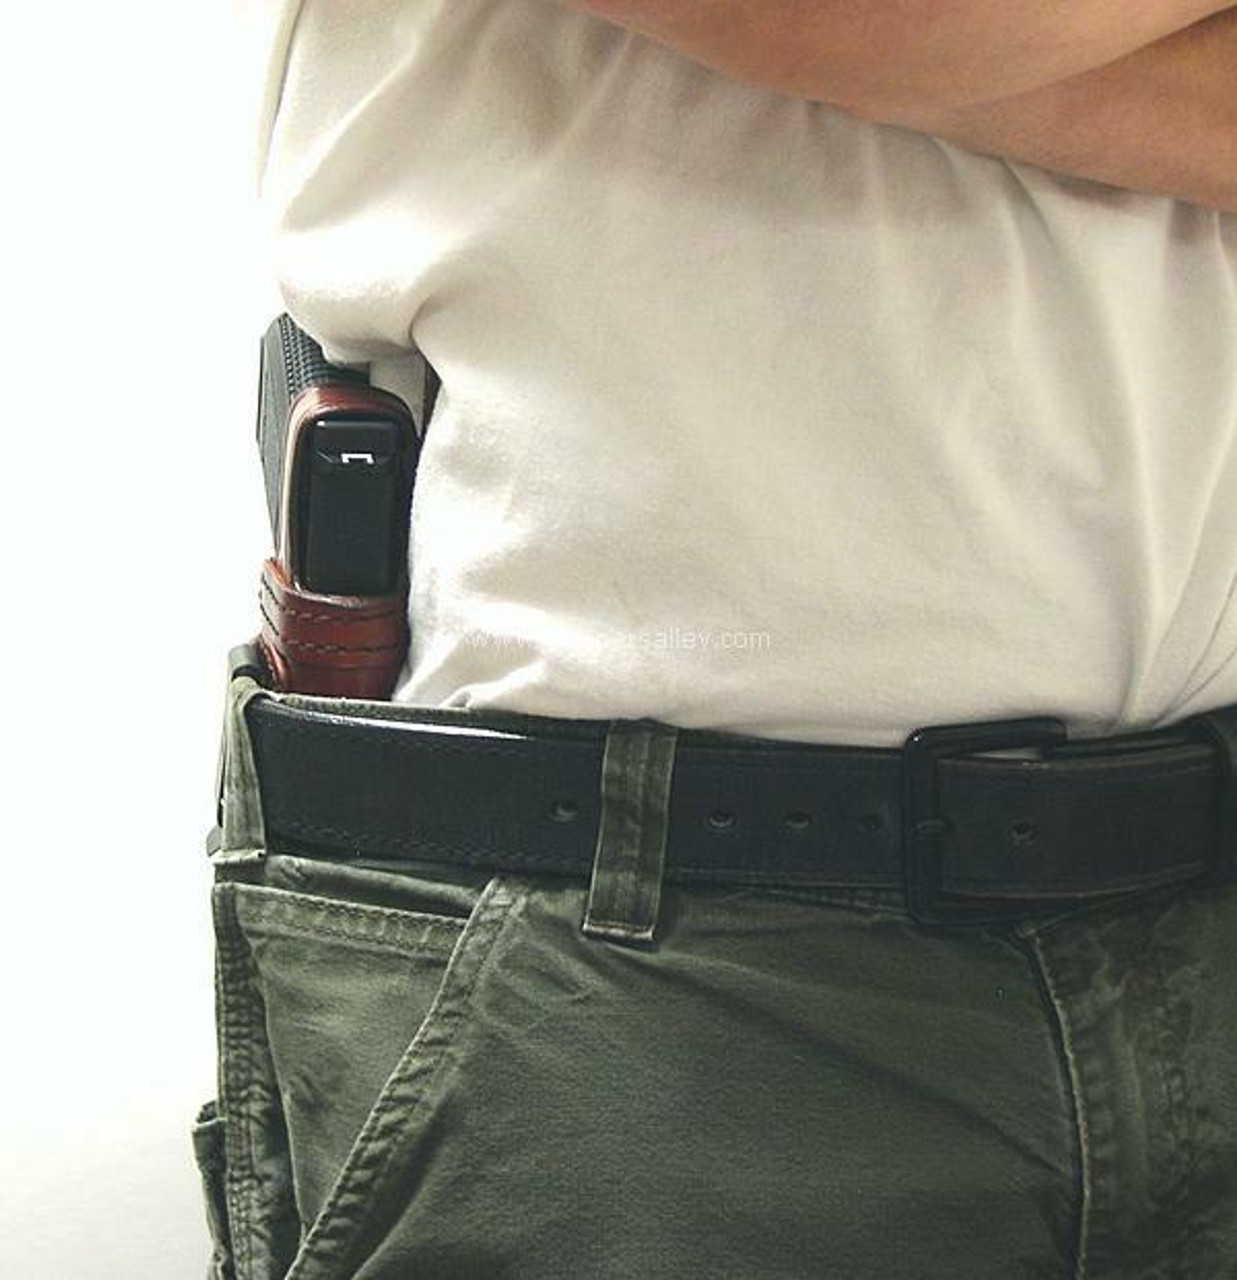 Right Hand - Profile View - Shown on the Belt with a Glock 19 for Demonstration Purposes